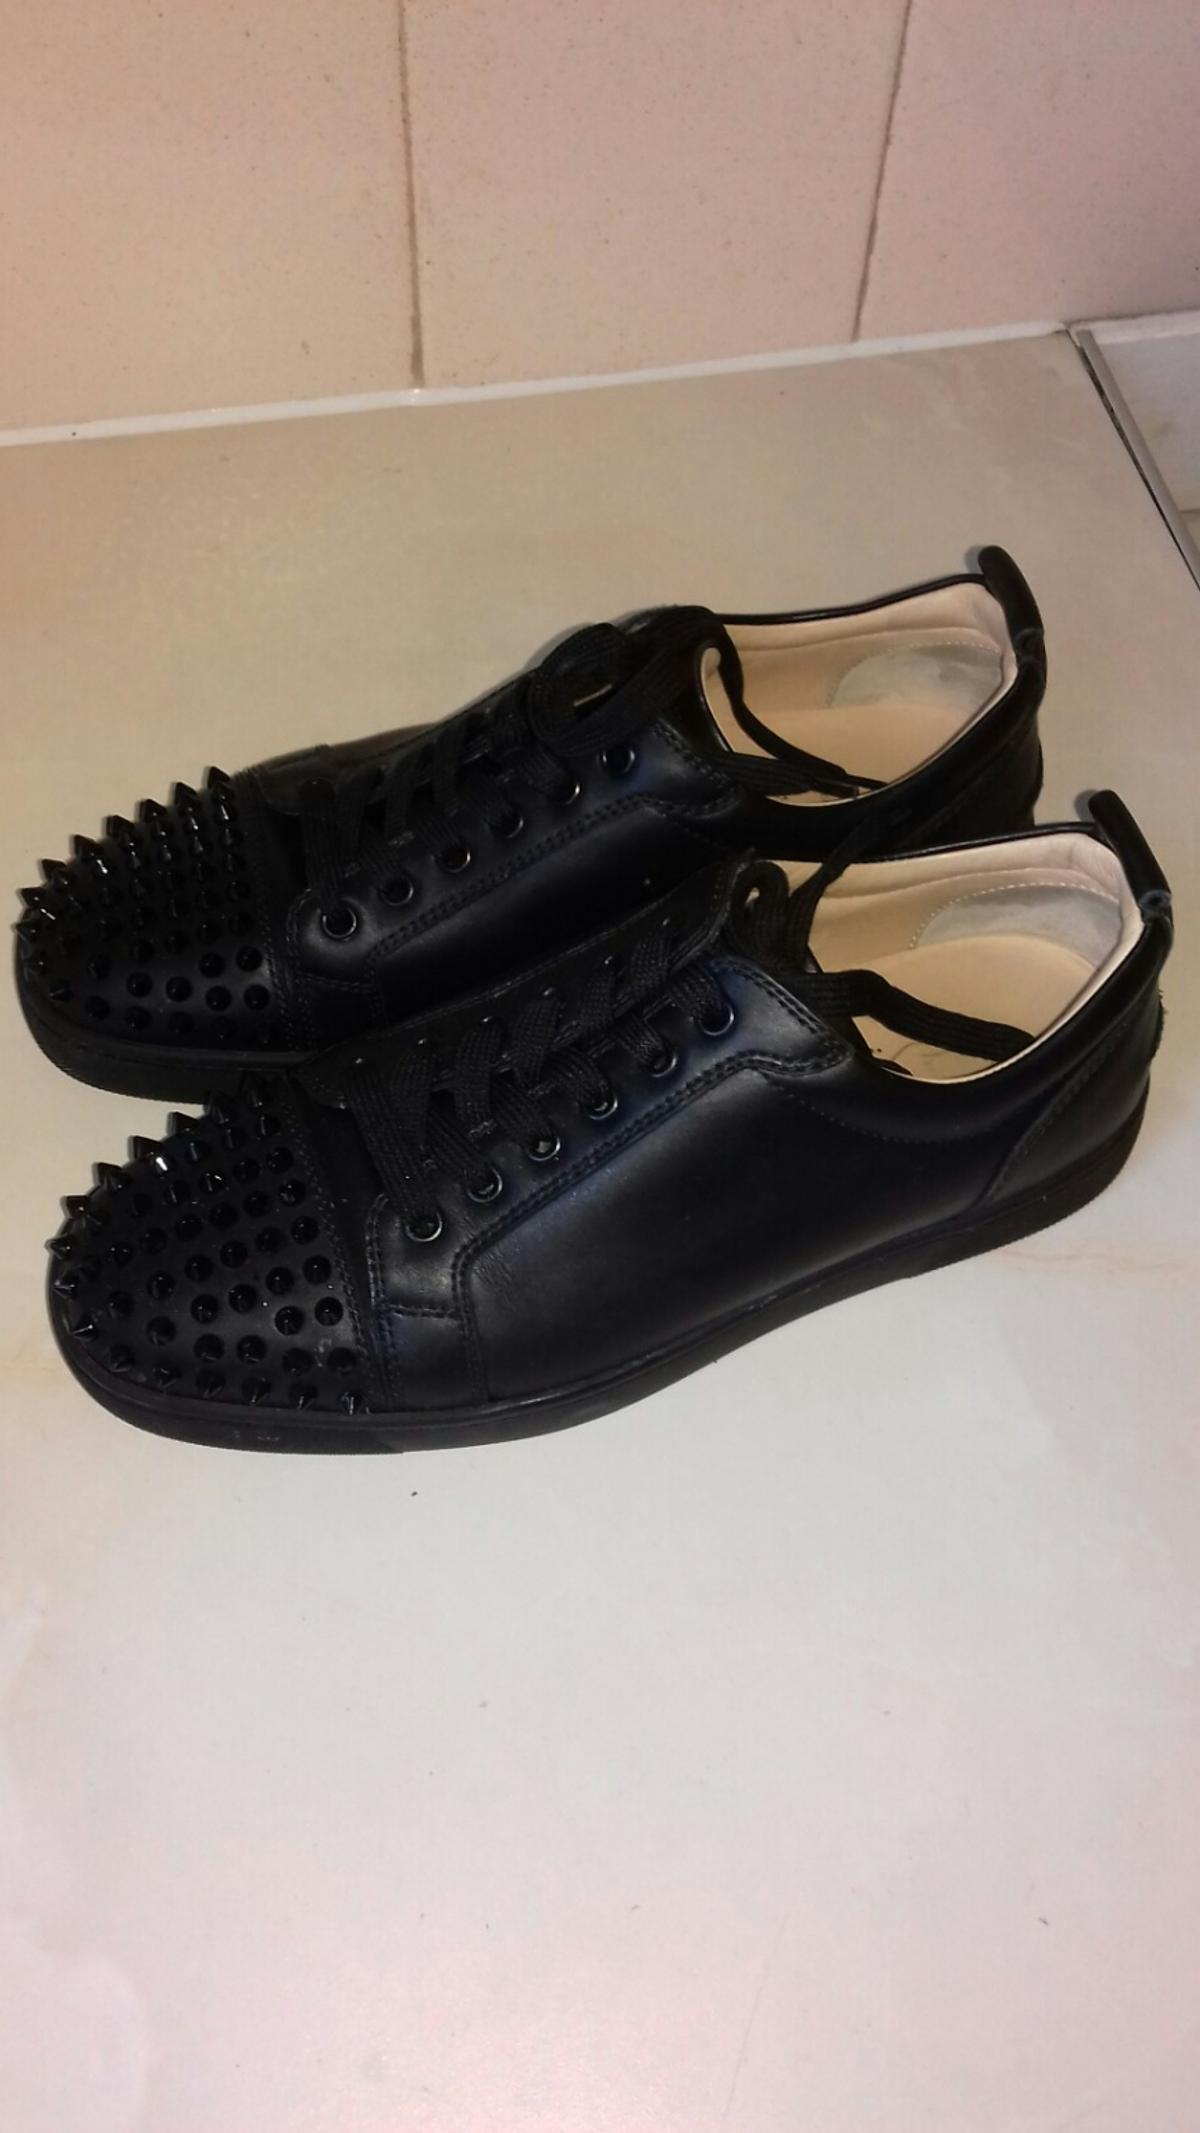 buy online dd689 56bdd CHRISTIAN LOUBOUTIN MENS TRAINERS-SIZE 41/7 in ST1-Trent for ...